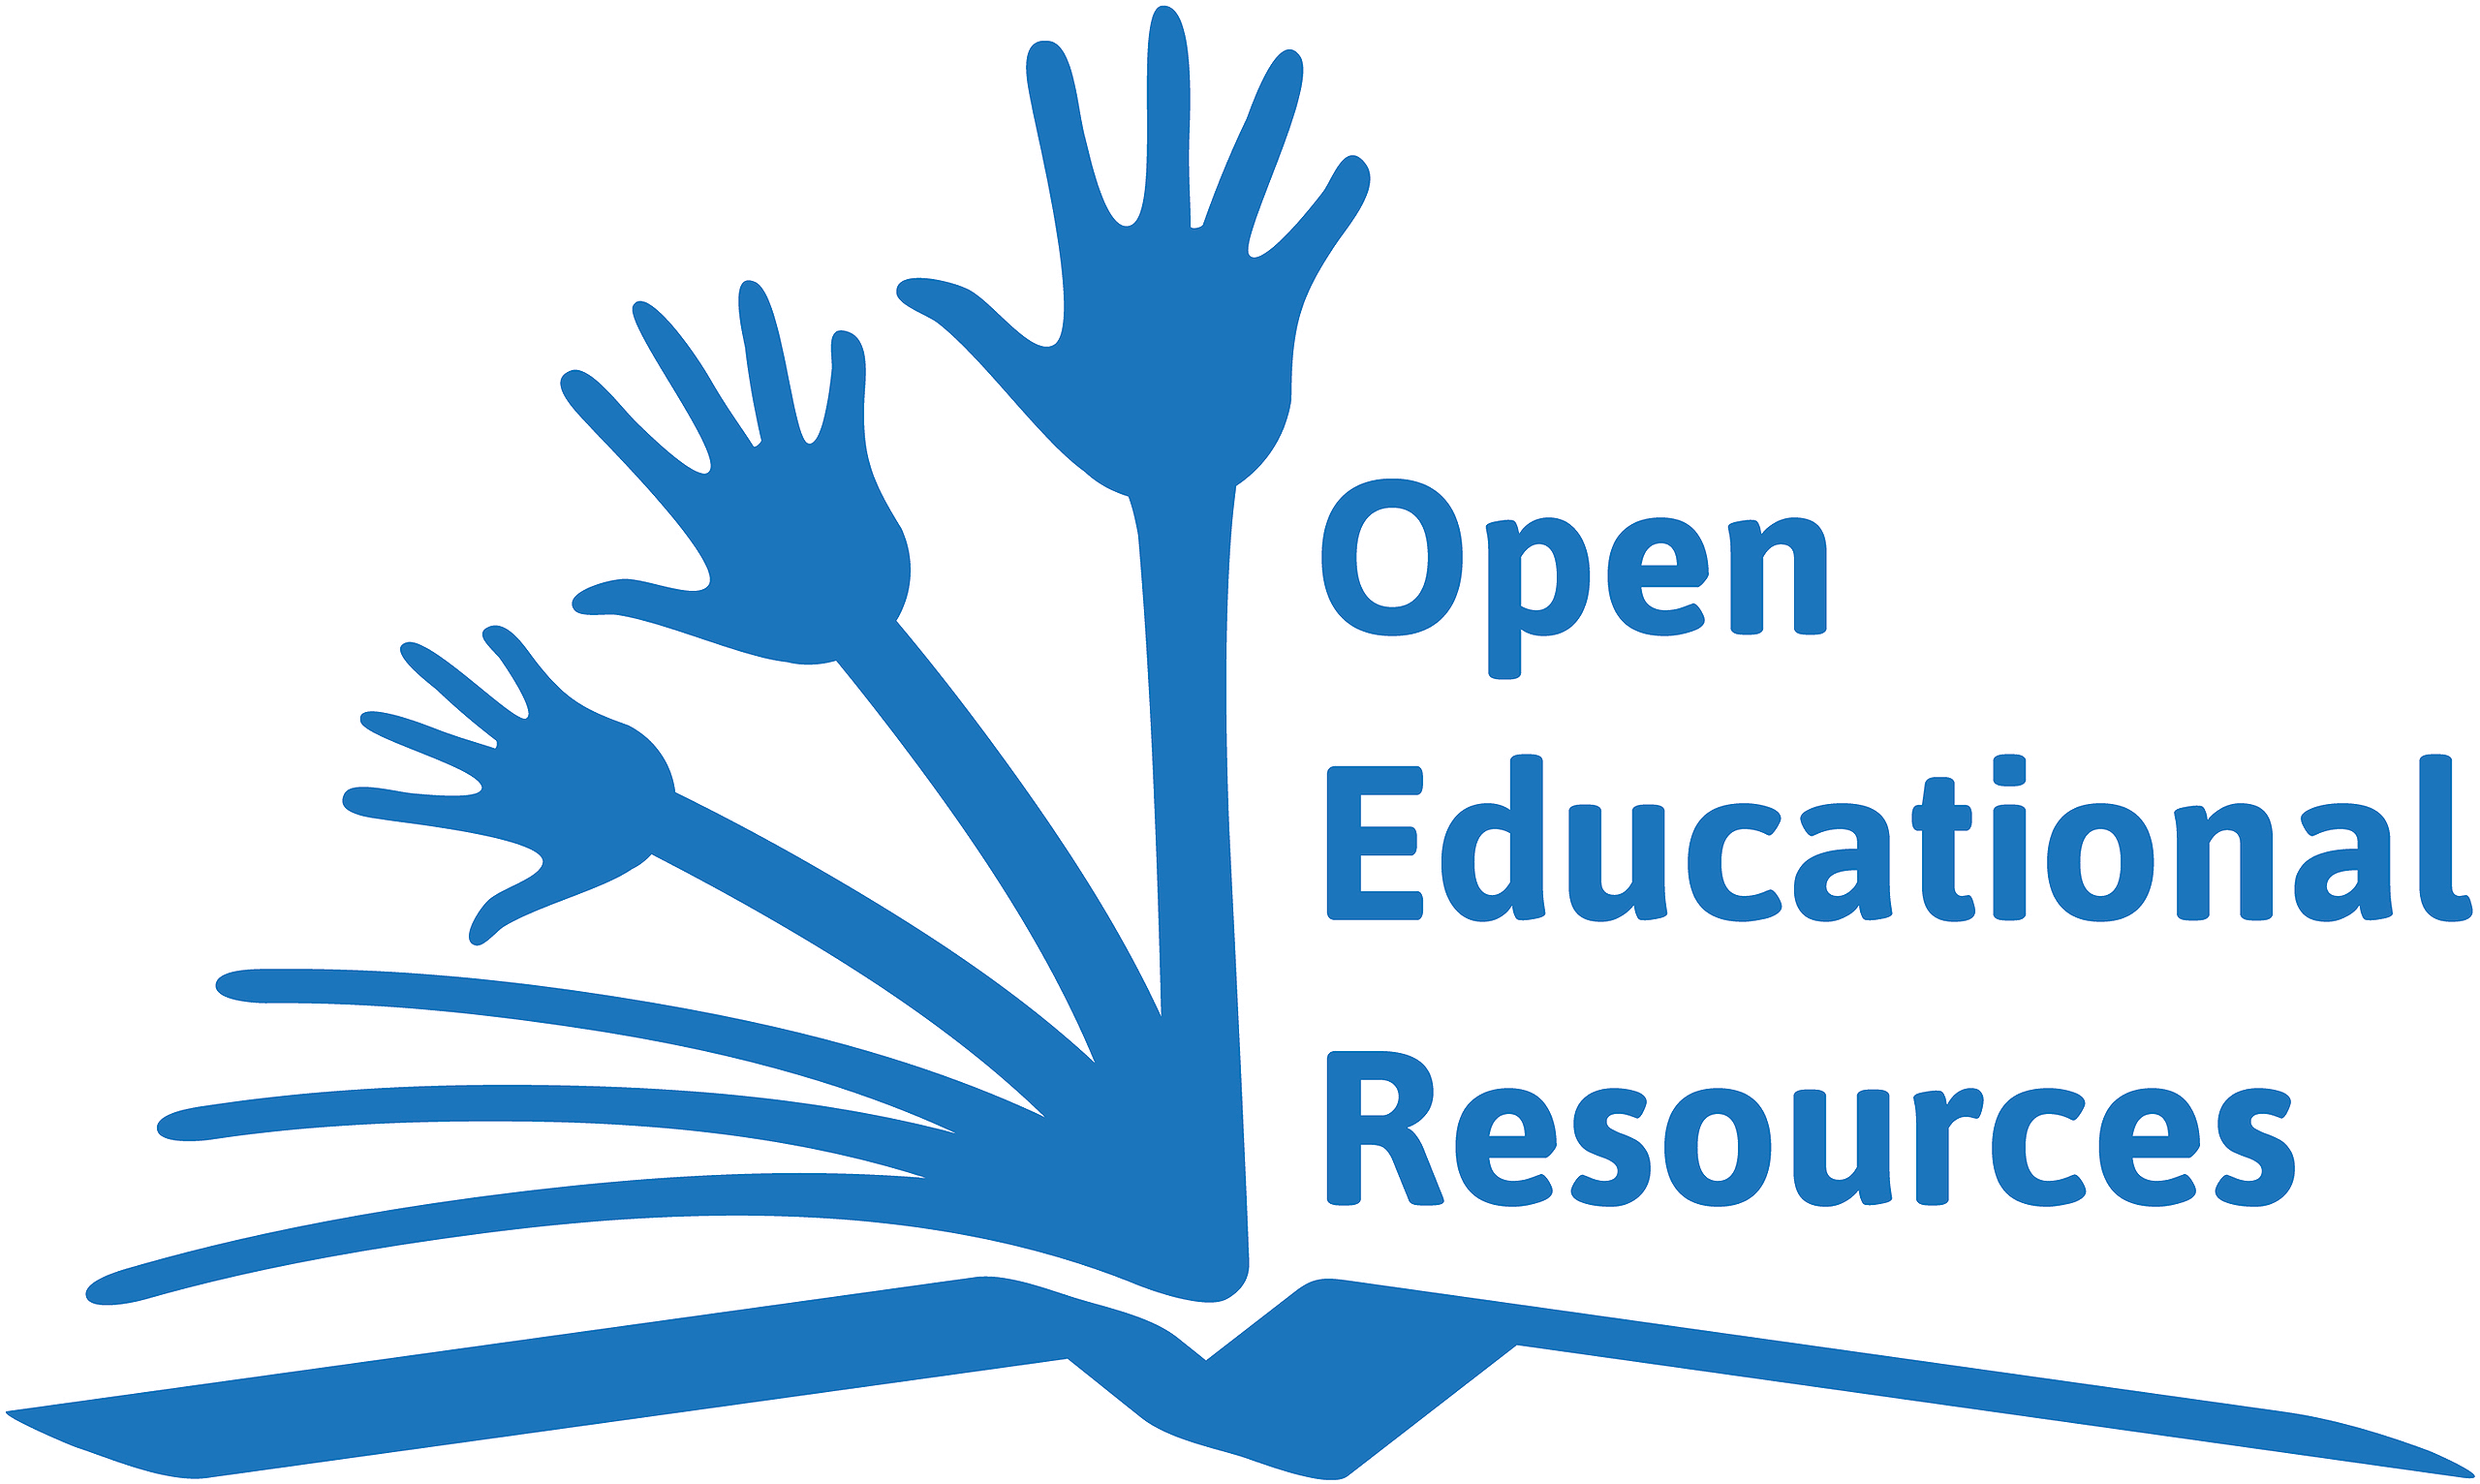 open-educational-resources-logo.png